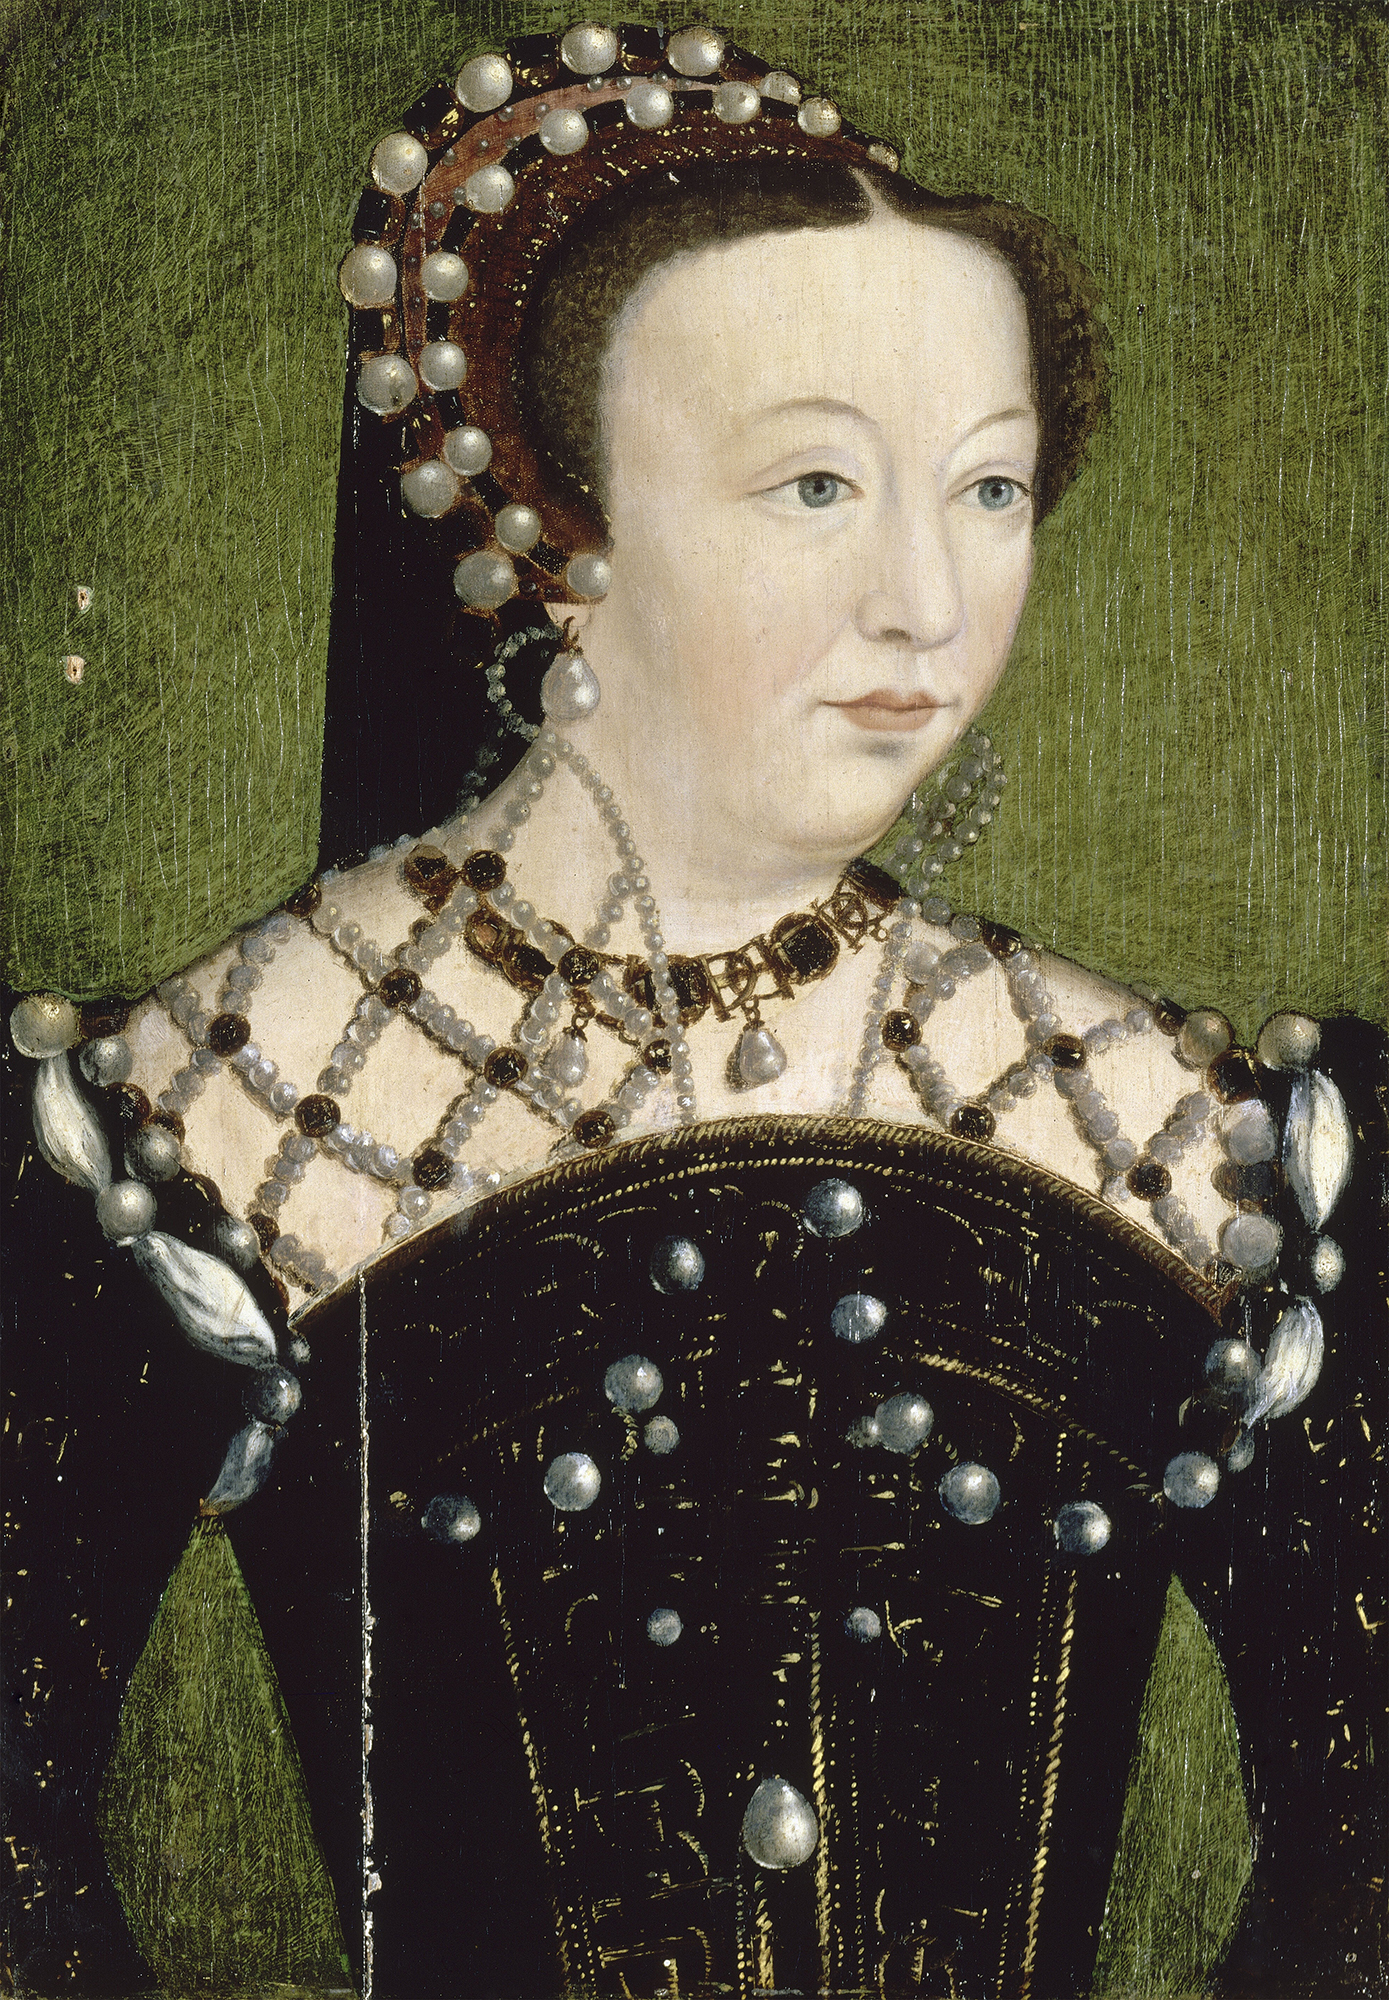 Portrait of Catherine de' Medici (1519-1589), Duchess of Orléans (1533-1536), Dauphine of France (1536-1547), Queen consort of France (1547-1559), Regent of France (1560-1563) | Portraits of Kings